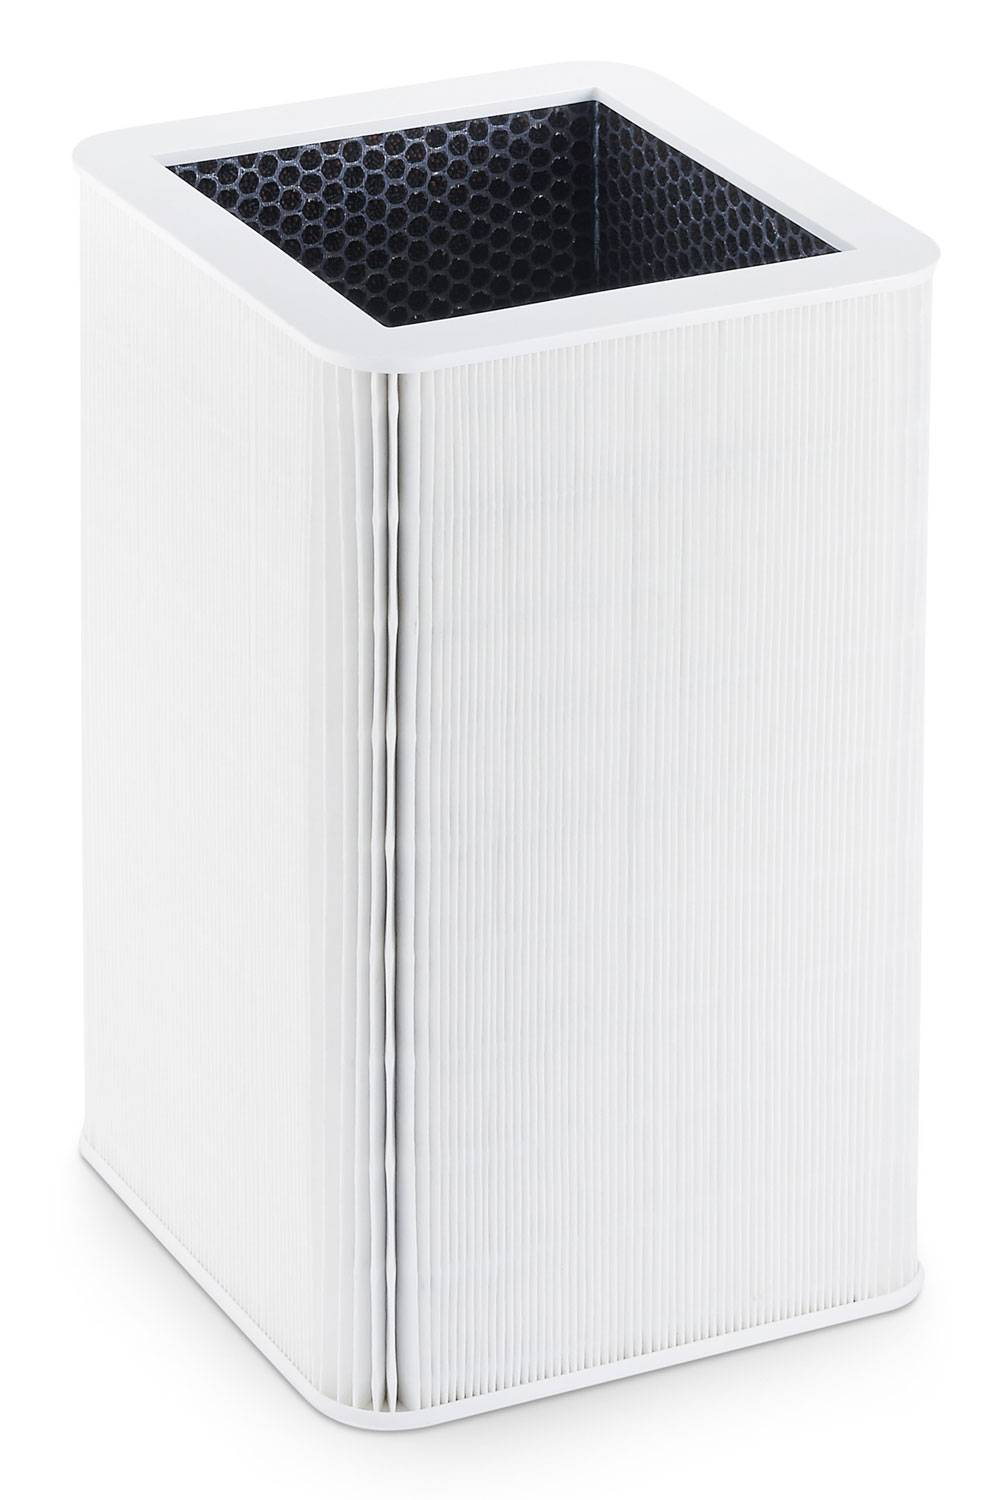 Blueair Blue Pure 121 Replacement Filter, Particle and Activated Carbon